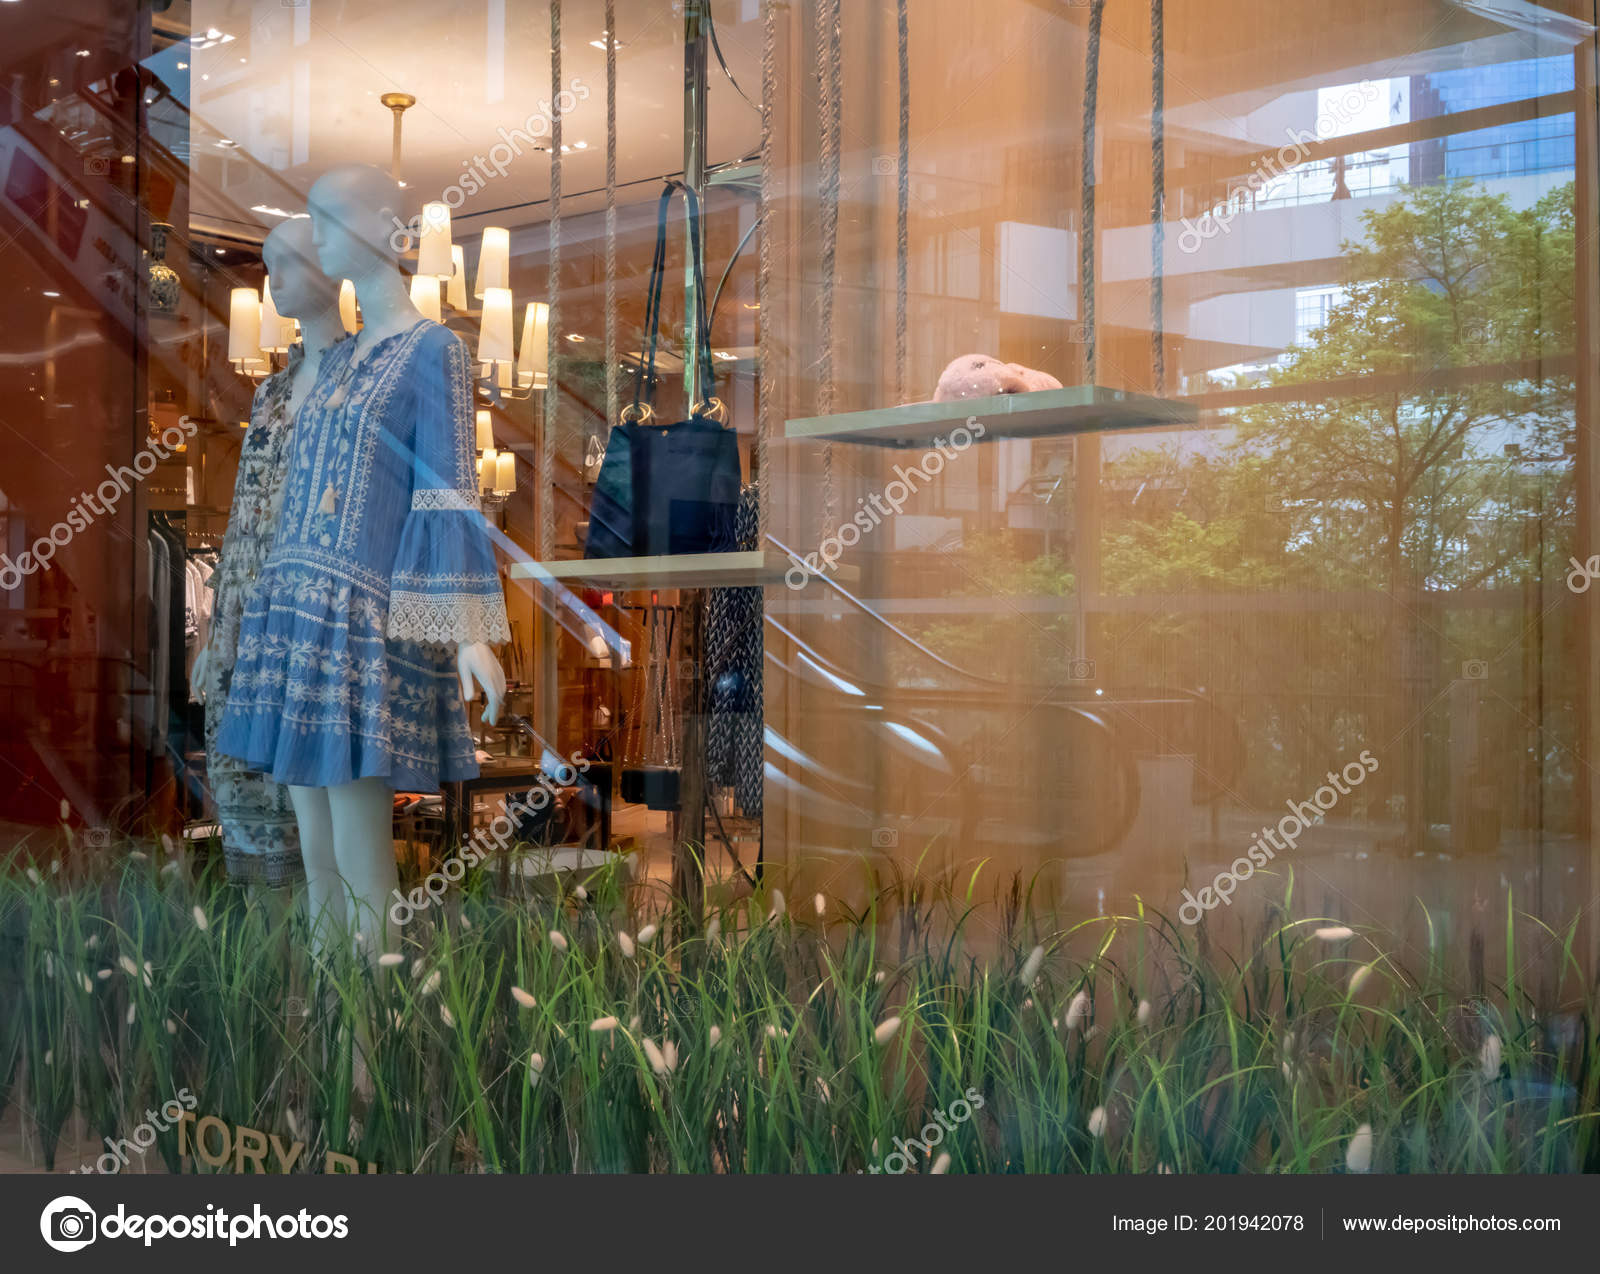 1c2318b3d680 Tory Burch Shop Emquatier Bangkok Thailand June 2018 Luxury Fashionable —  Stock Photo